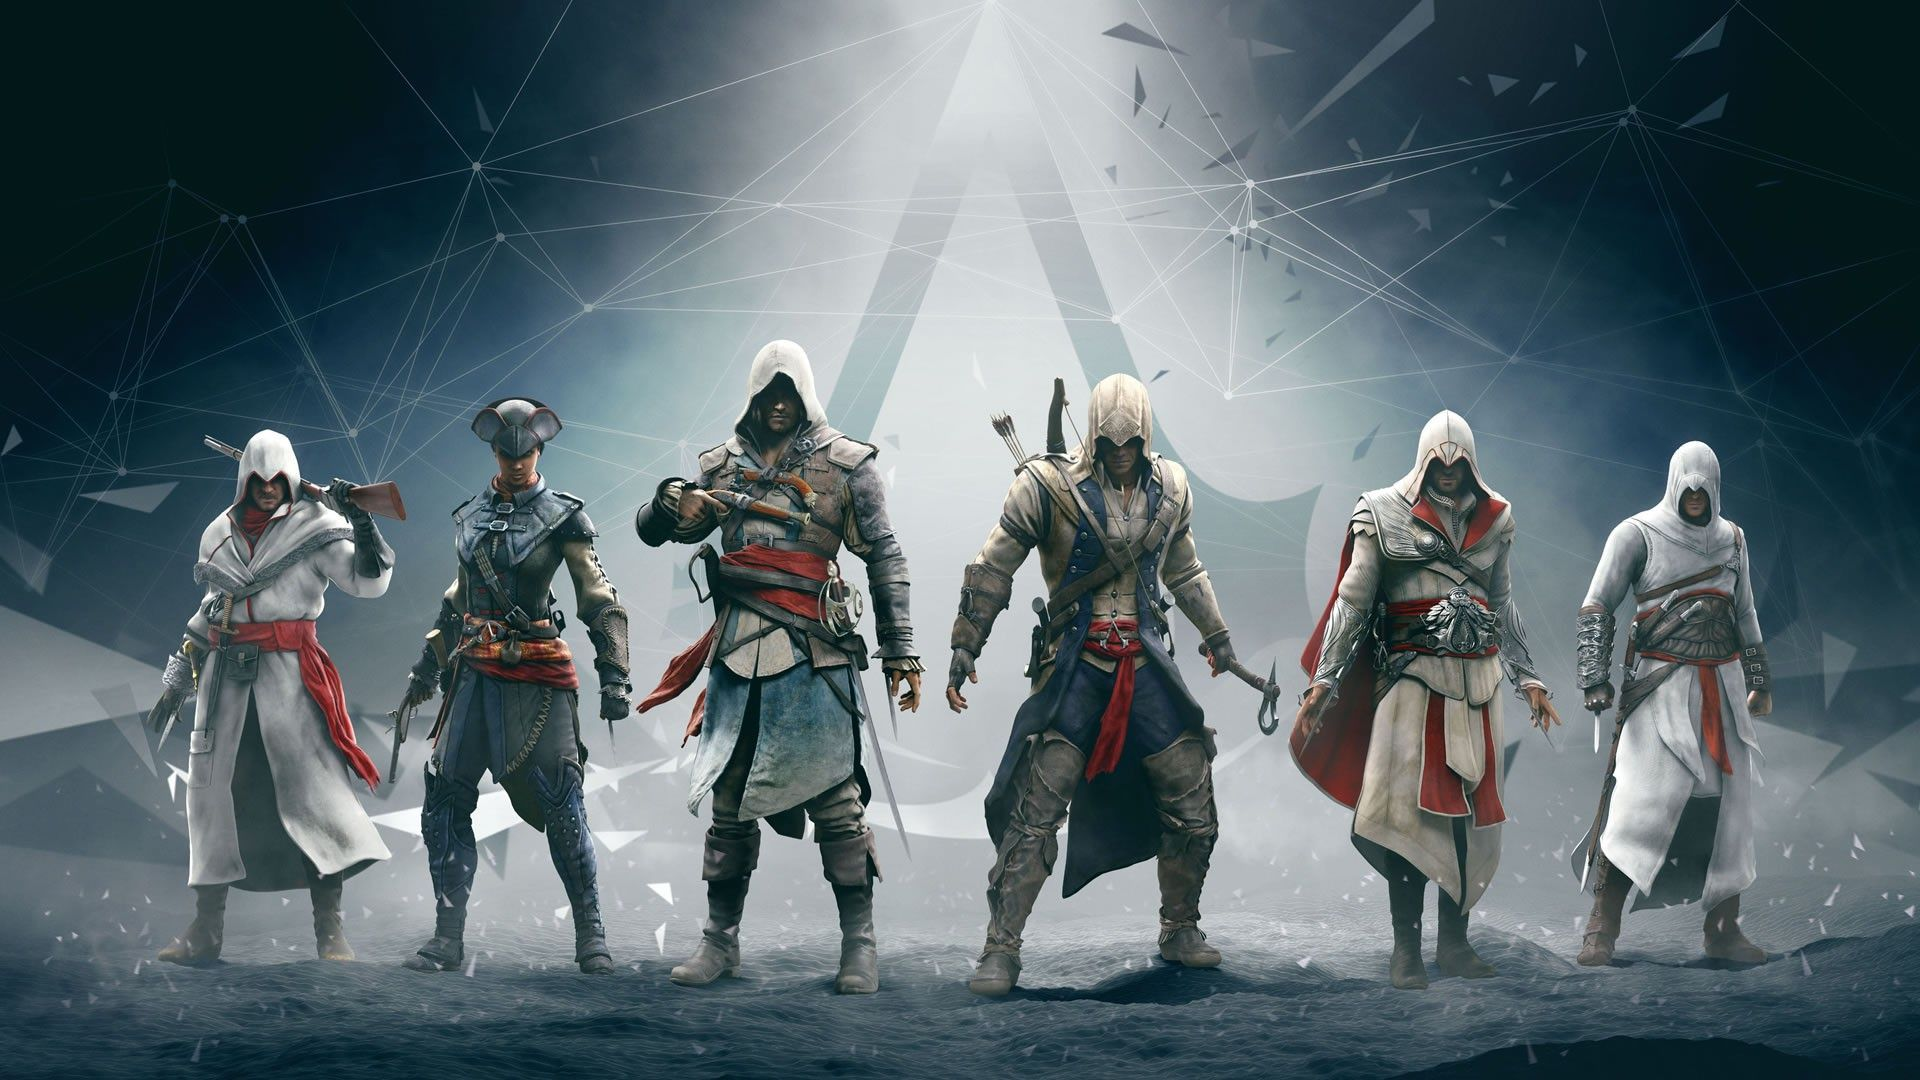 Download assassin 39 s creed unity 2014 wide wallpapers - Assassin s creed unity wallpaper ...